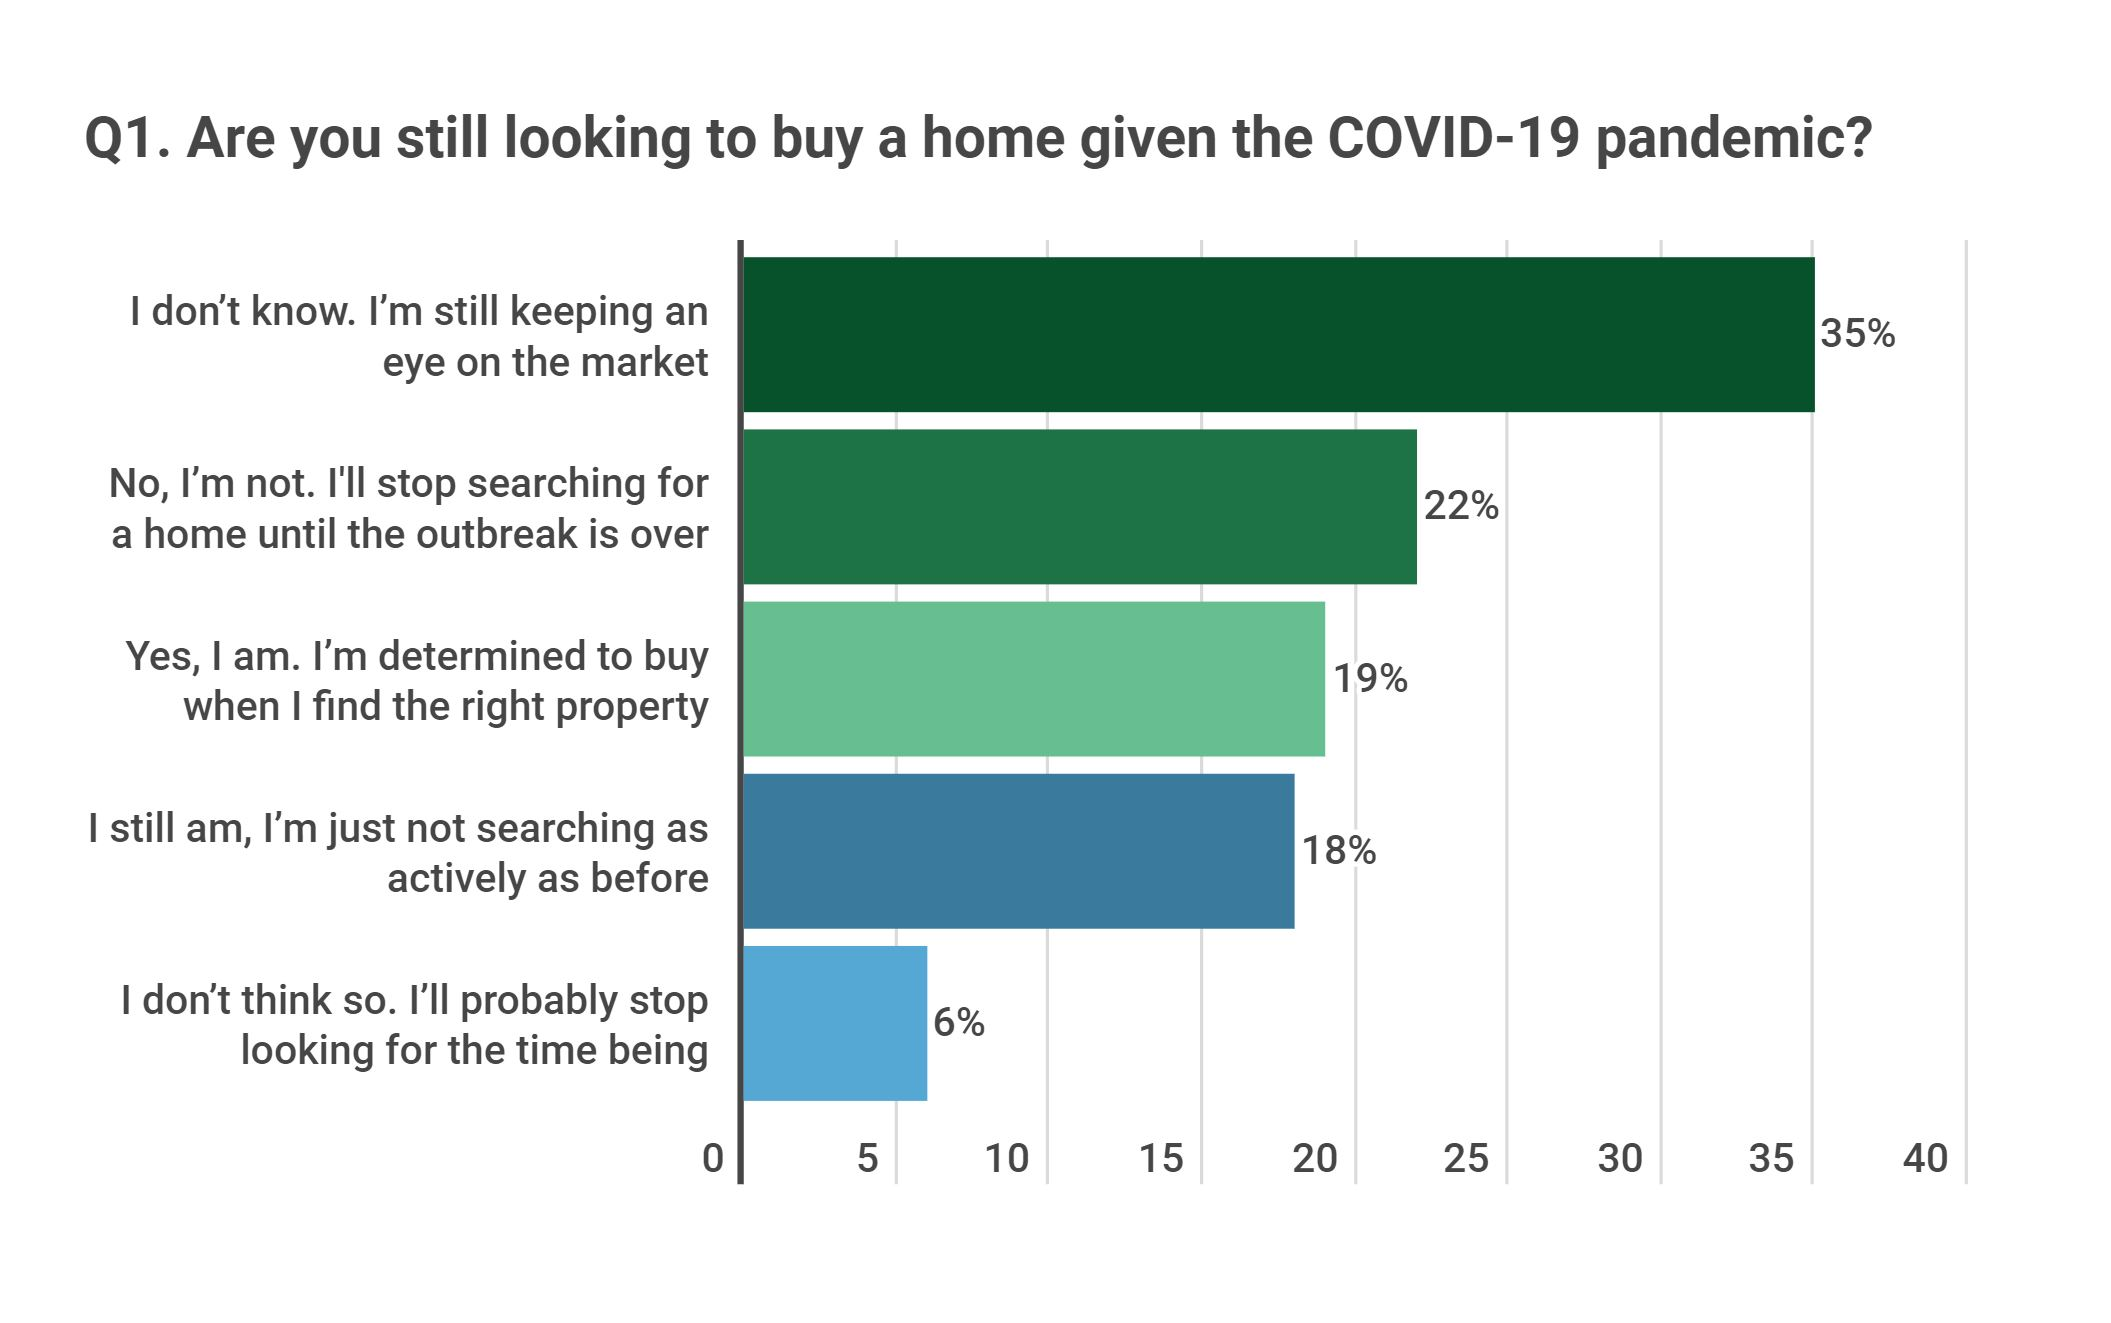 Realtor Magazine 2020 03 31 Buyers Confidence during the Coronavirus COVID-19 outbreak remains strong looking to buy a home Hoey Team eXp Realty